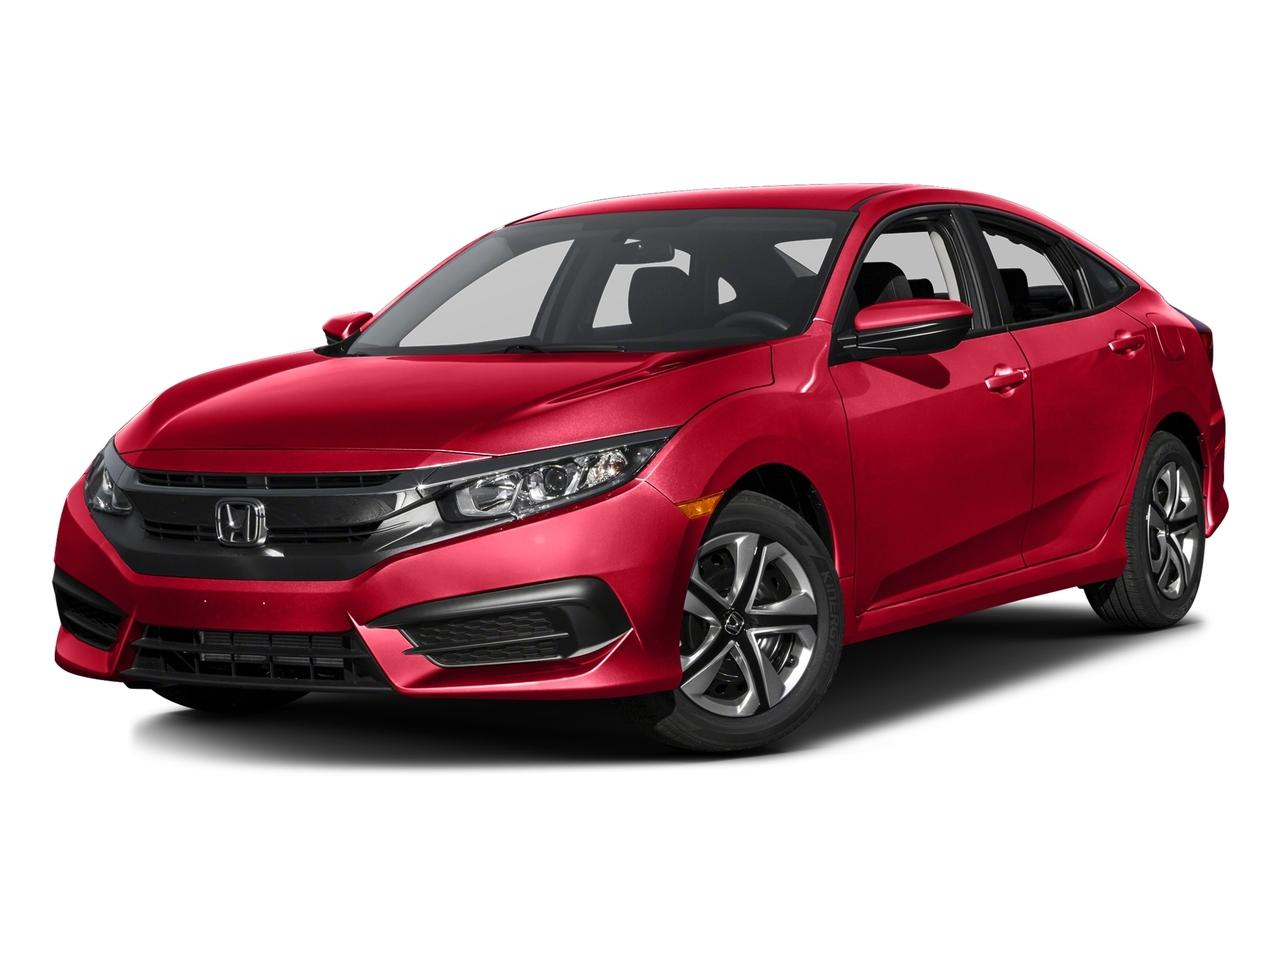 2016 Honda Civic Sedan Vehicle Photo in Colma, CA 94014